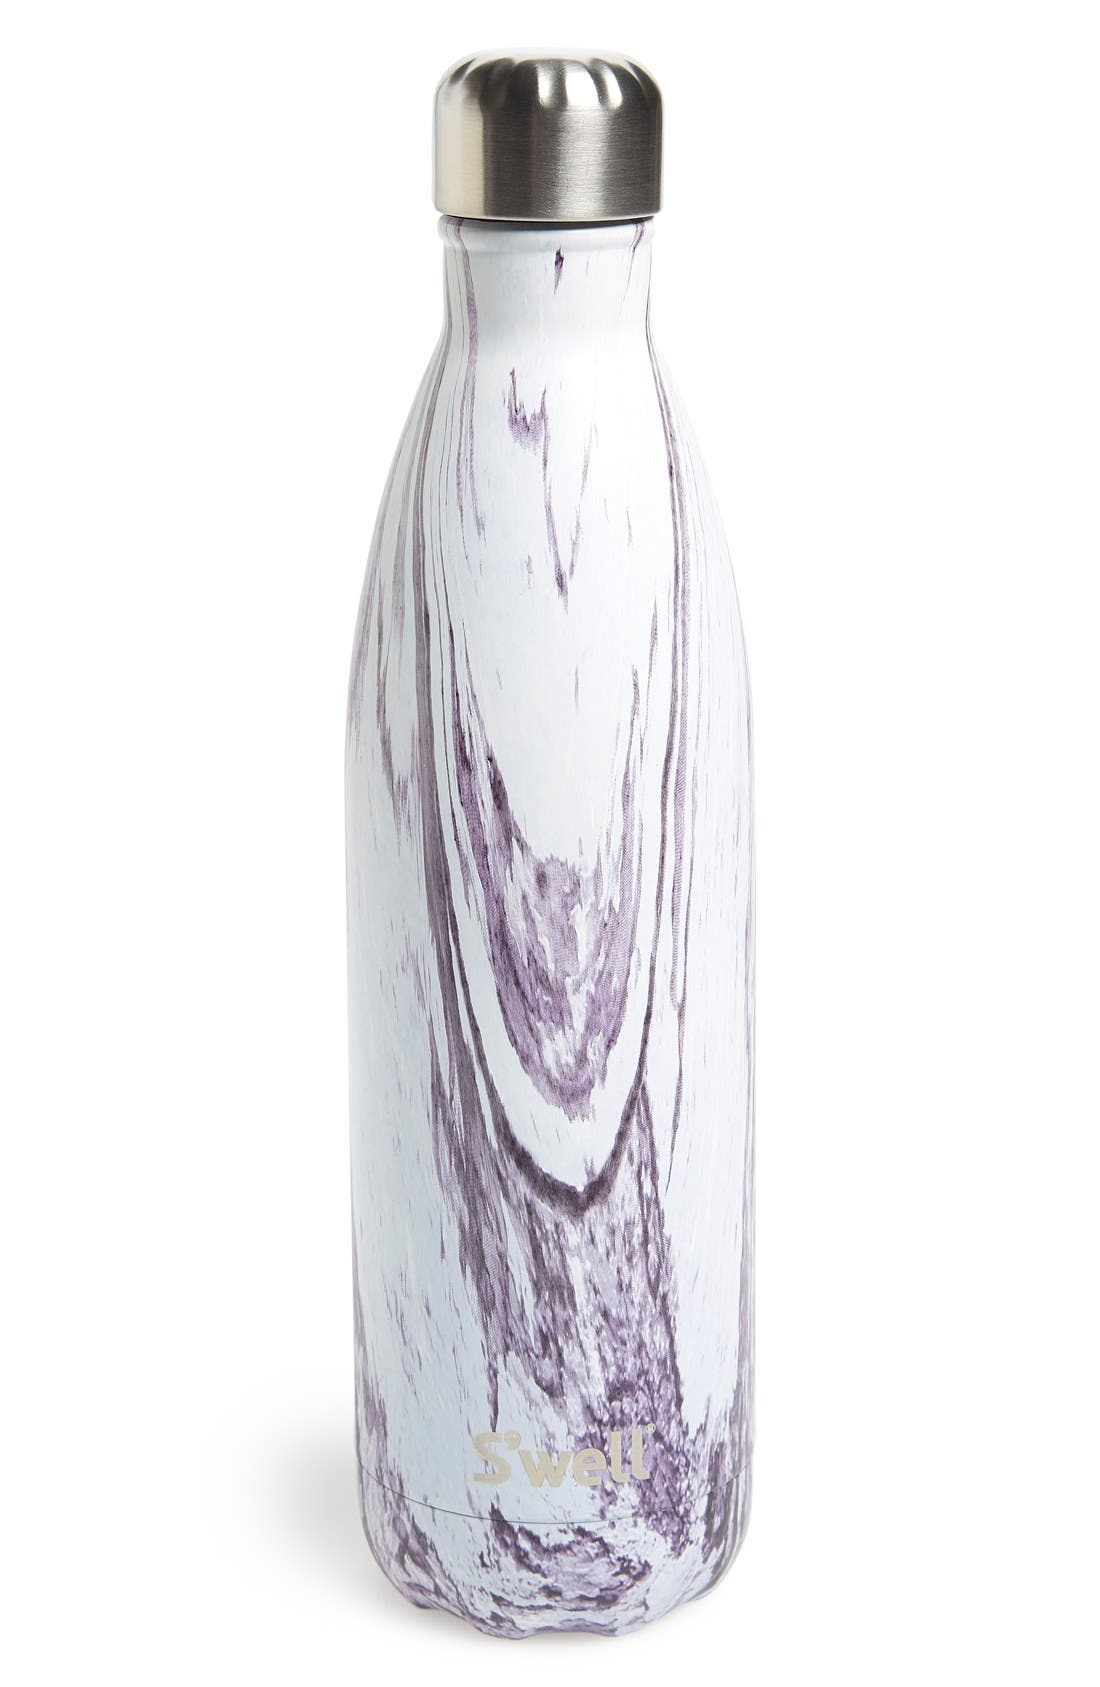 Alternate Image 1 Selected - S'well 'The Wood Collection - Lily Wood' Insulated Stainless Steel Water Bottle